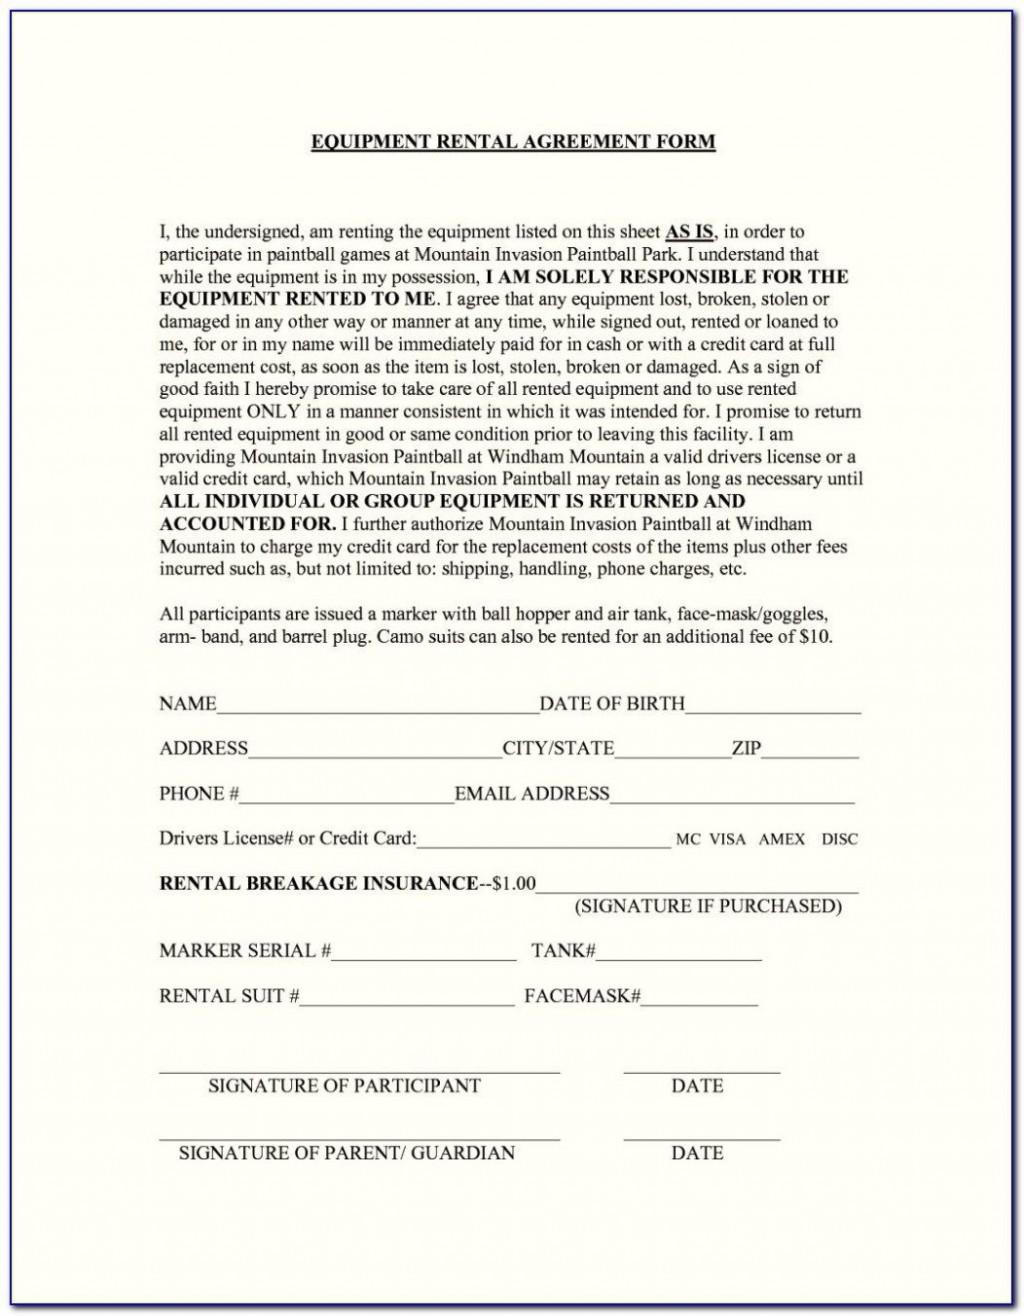 004 Astounding Rental Agreement Template Word Canada High Def Large